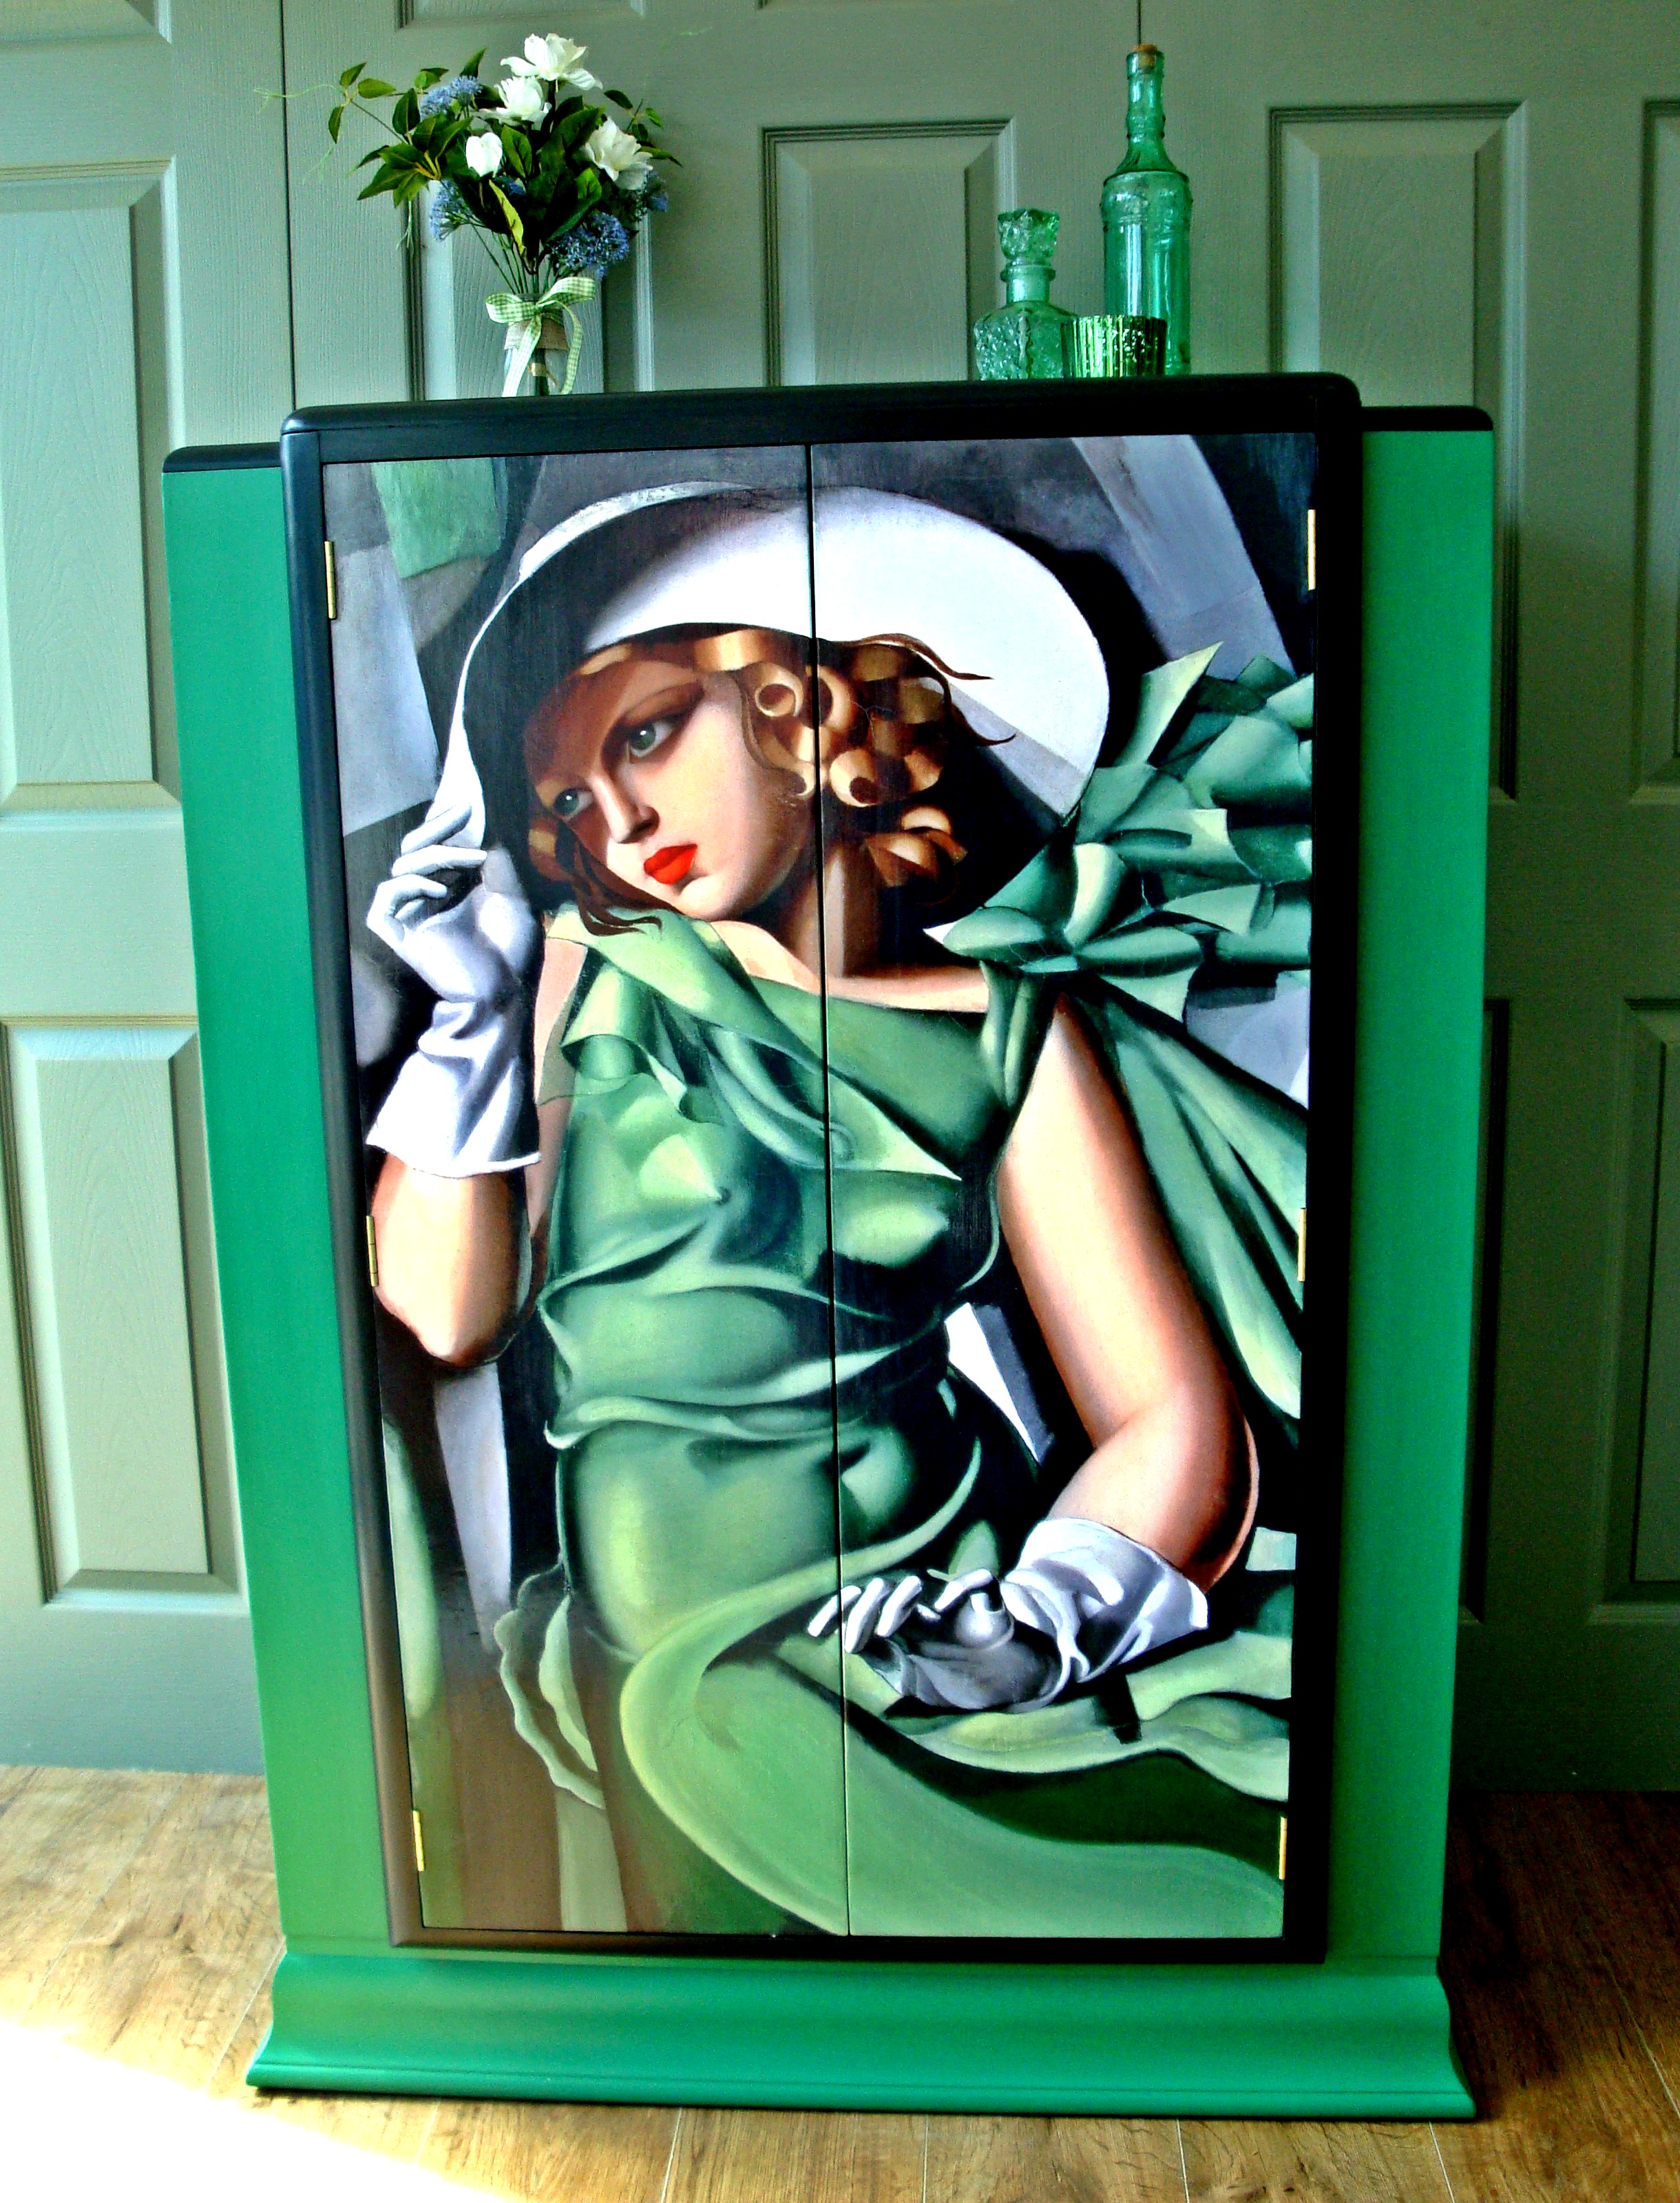 The House of Upcycling: Siren Designs de Lempicka Decoupaged Cabinet